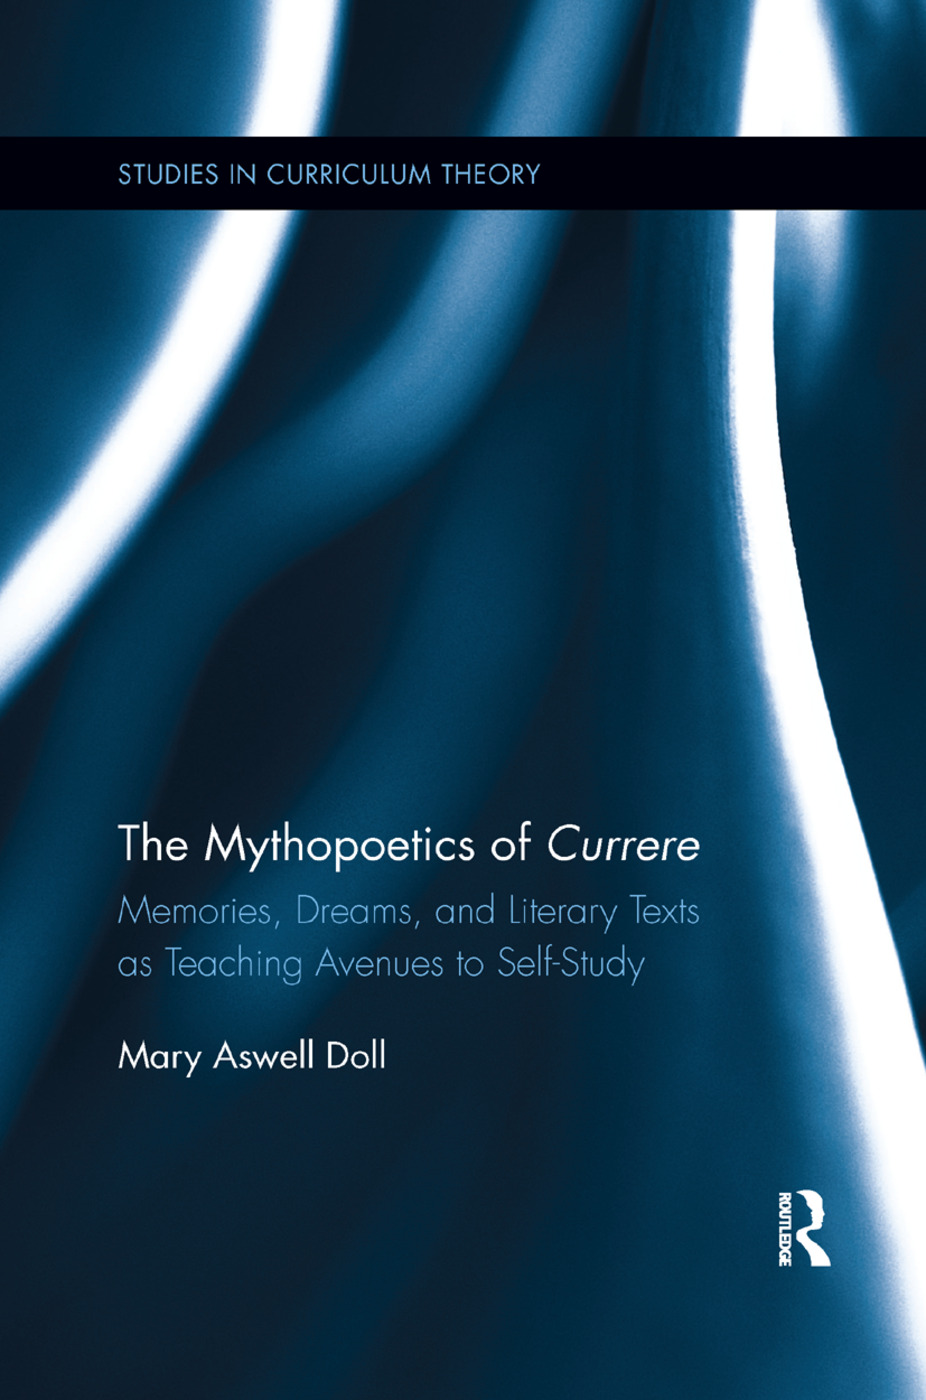 The Mythopoetics of Currere: Memories, Dreams, and Literary Texts as Teaching Avenues to Self-Study book cover